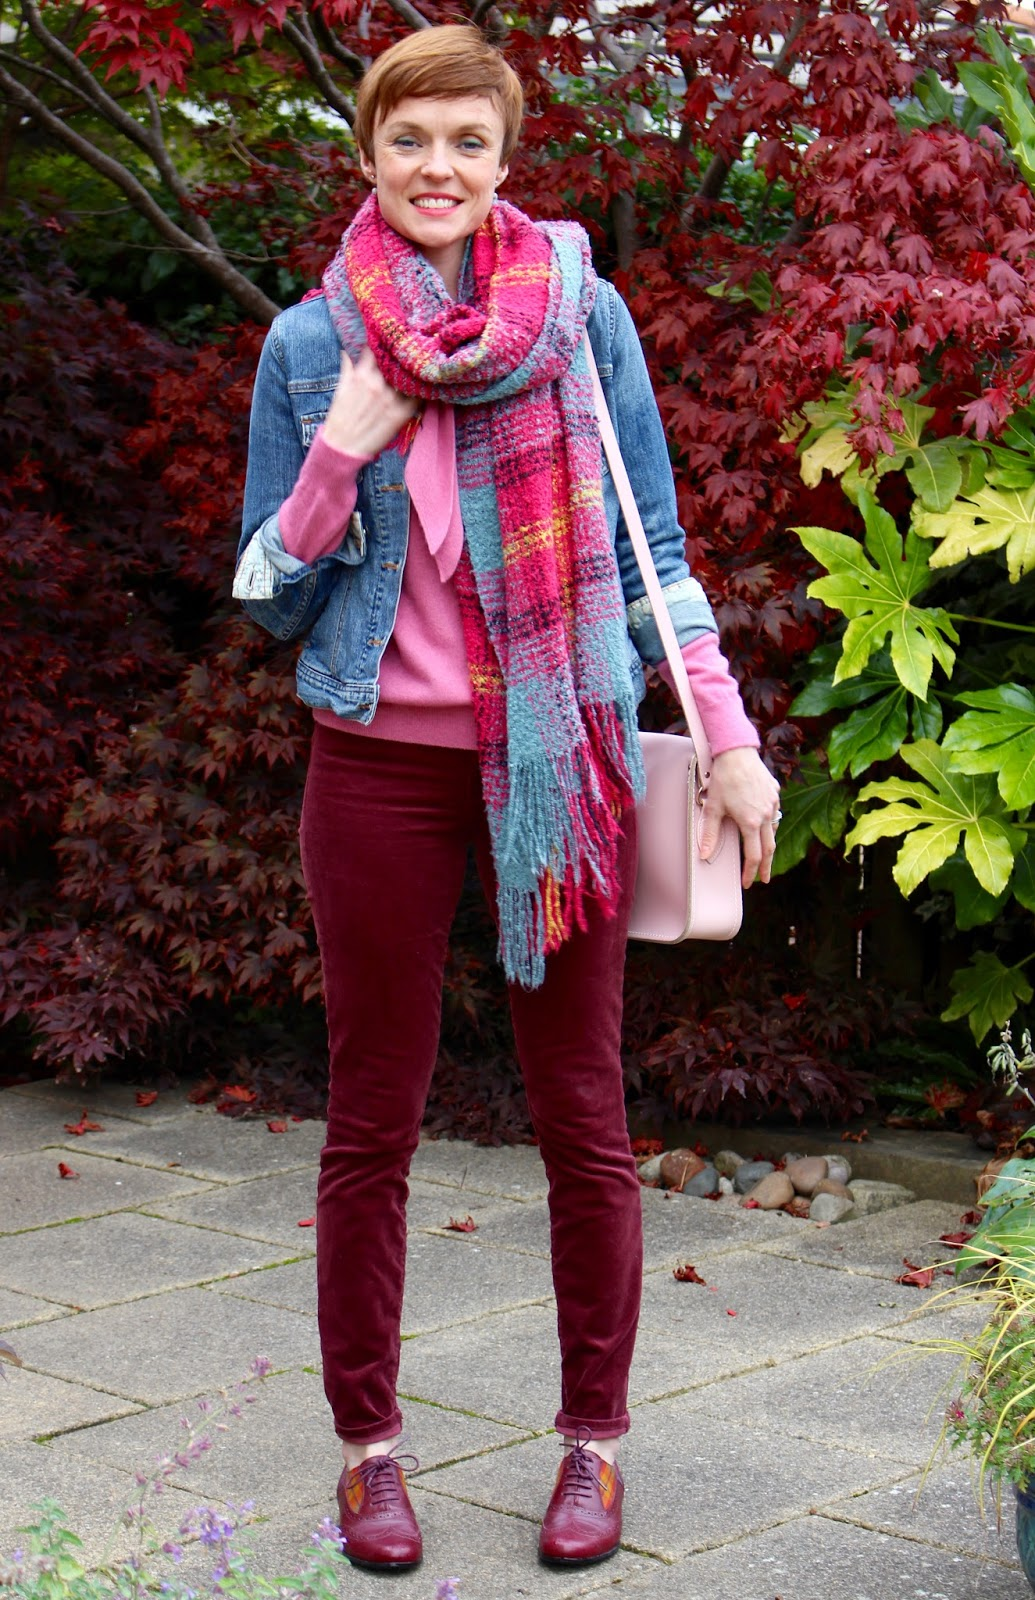 Autumn layers | pinks and berry tones with denim, over 40.